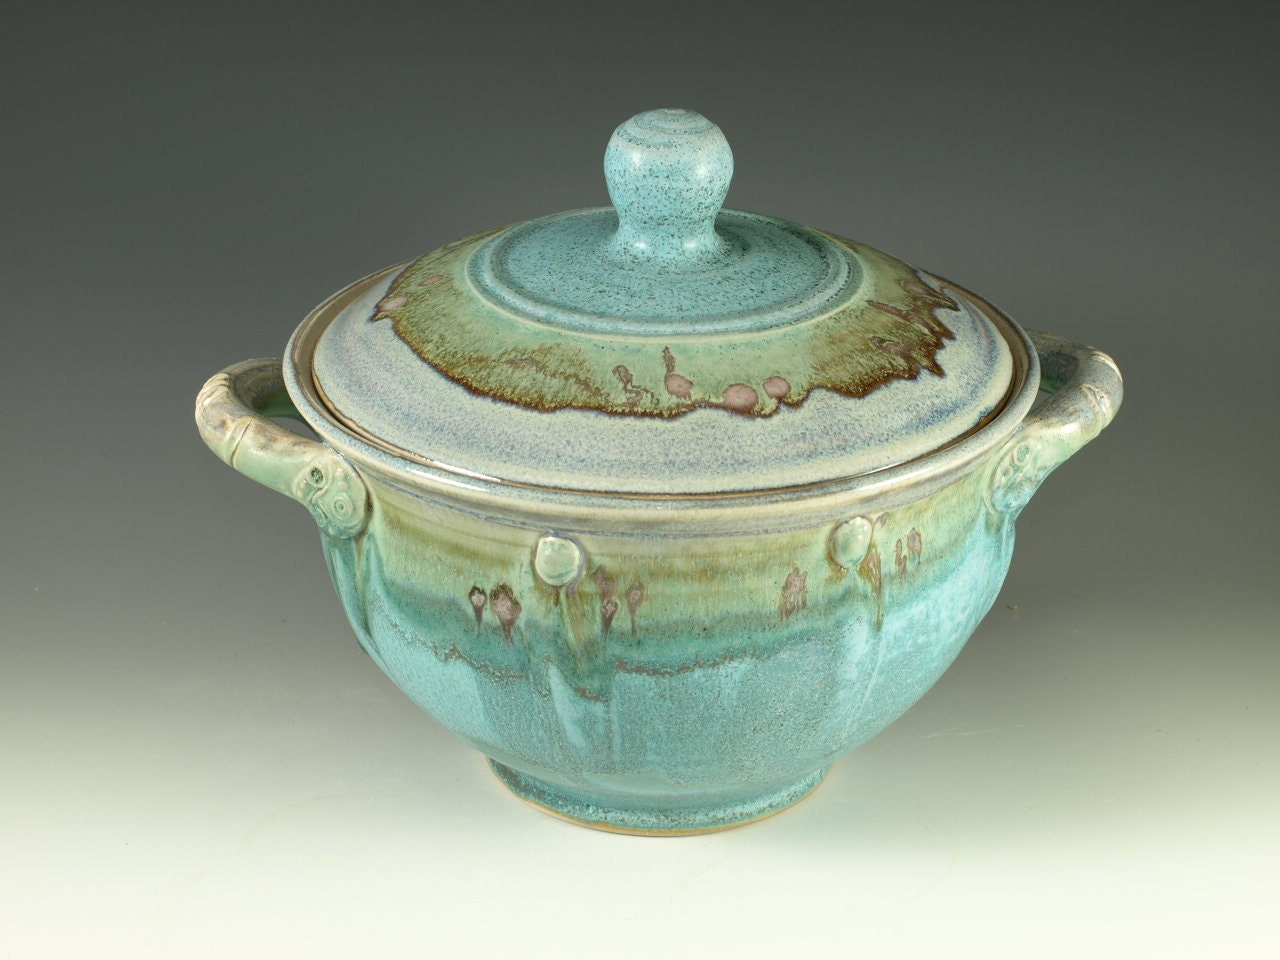 Casserole Dish Two Quart In Turquoise Glaze Great Wedding